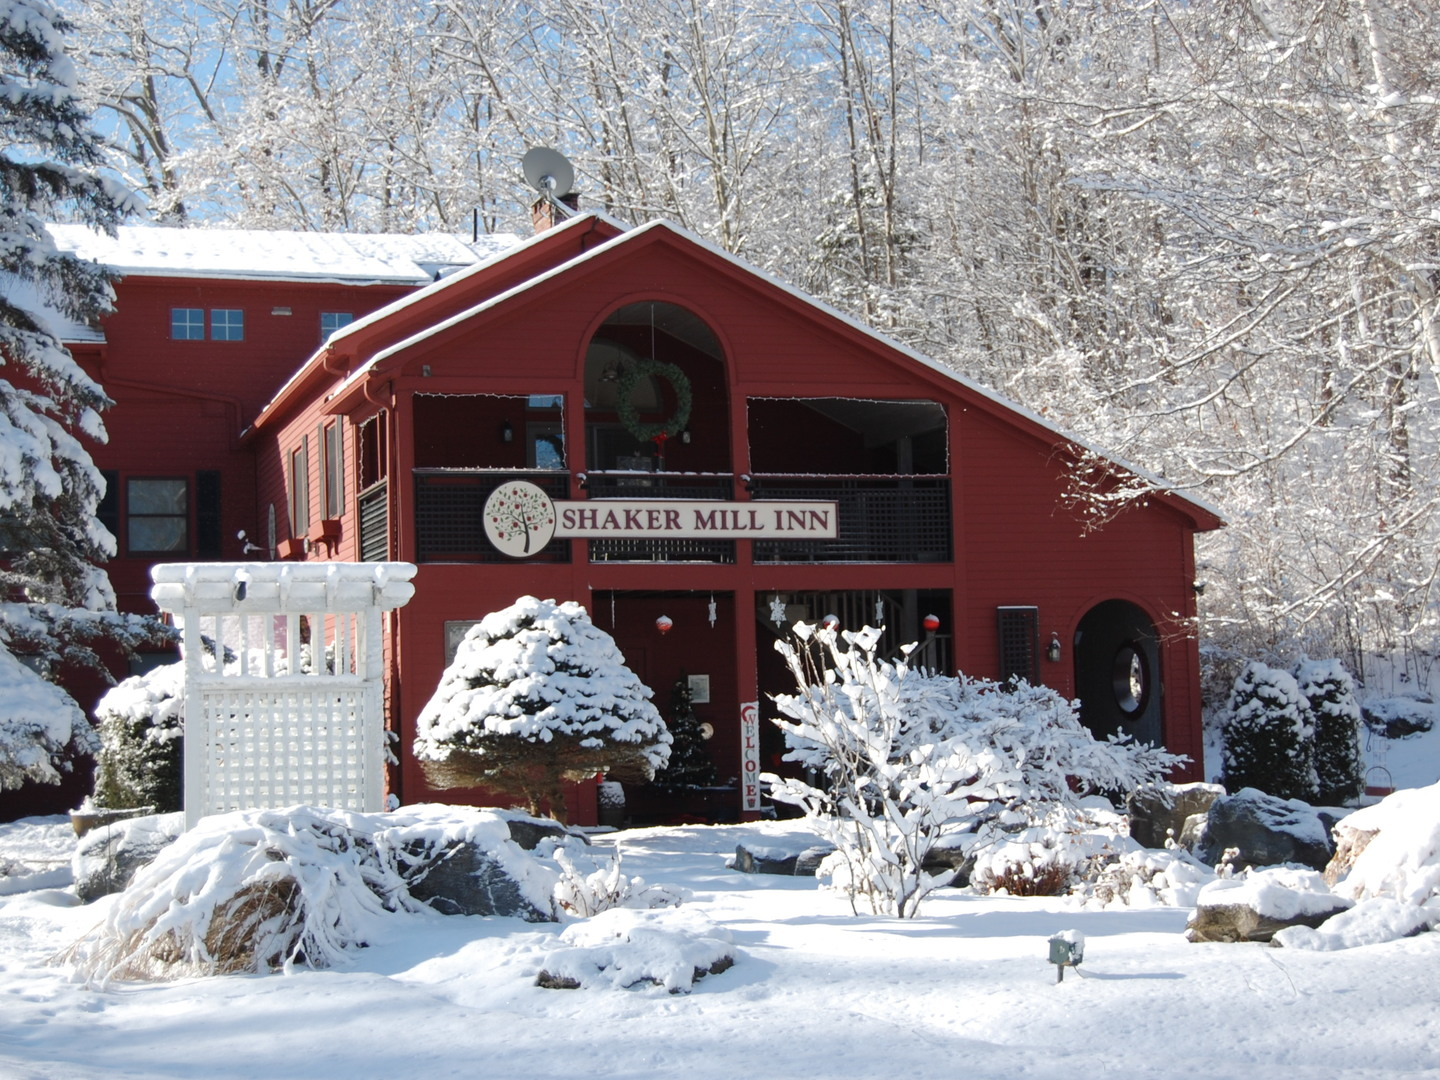 A house covered in snow with covered bridge in the background at Shaker Mill Inn.